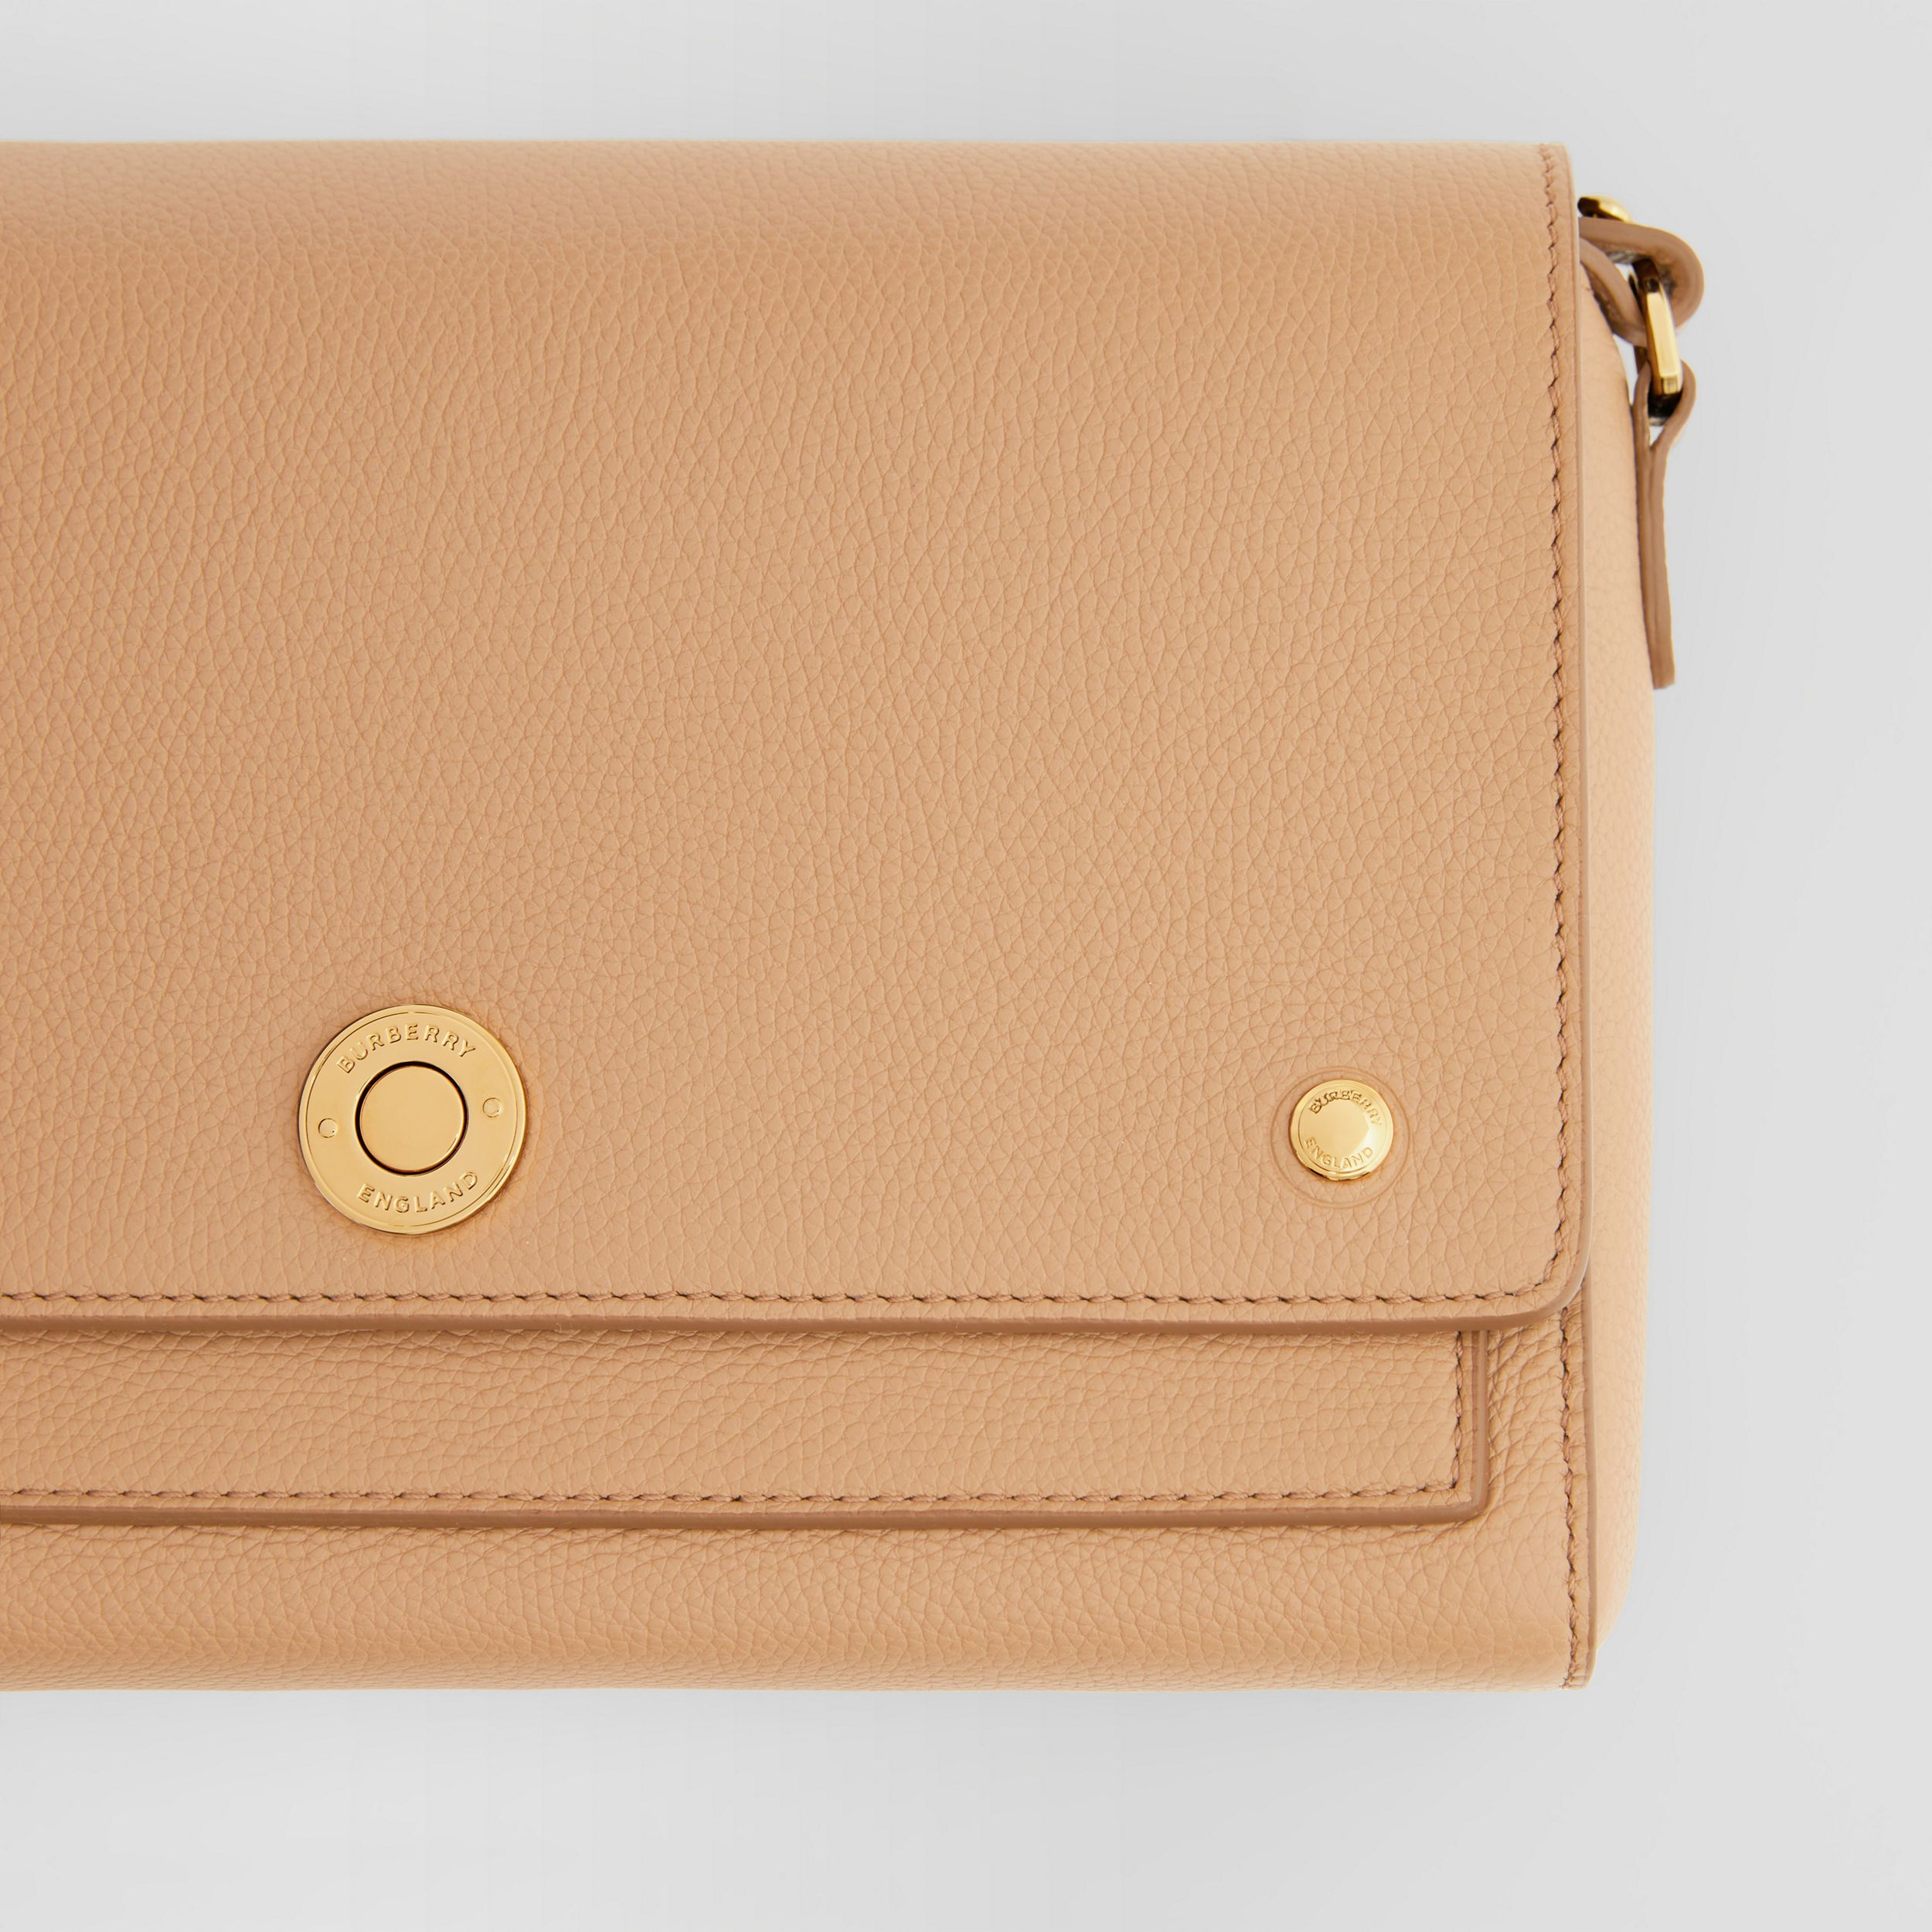 Grainy Leather Note Crossbody Bag in Camel - Women | Burberry Hong Kong S.A.R. - 2